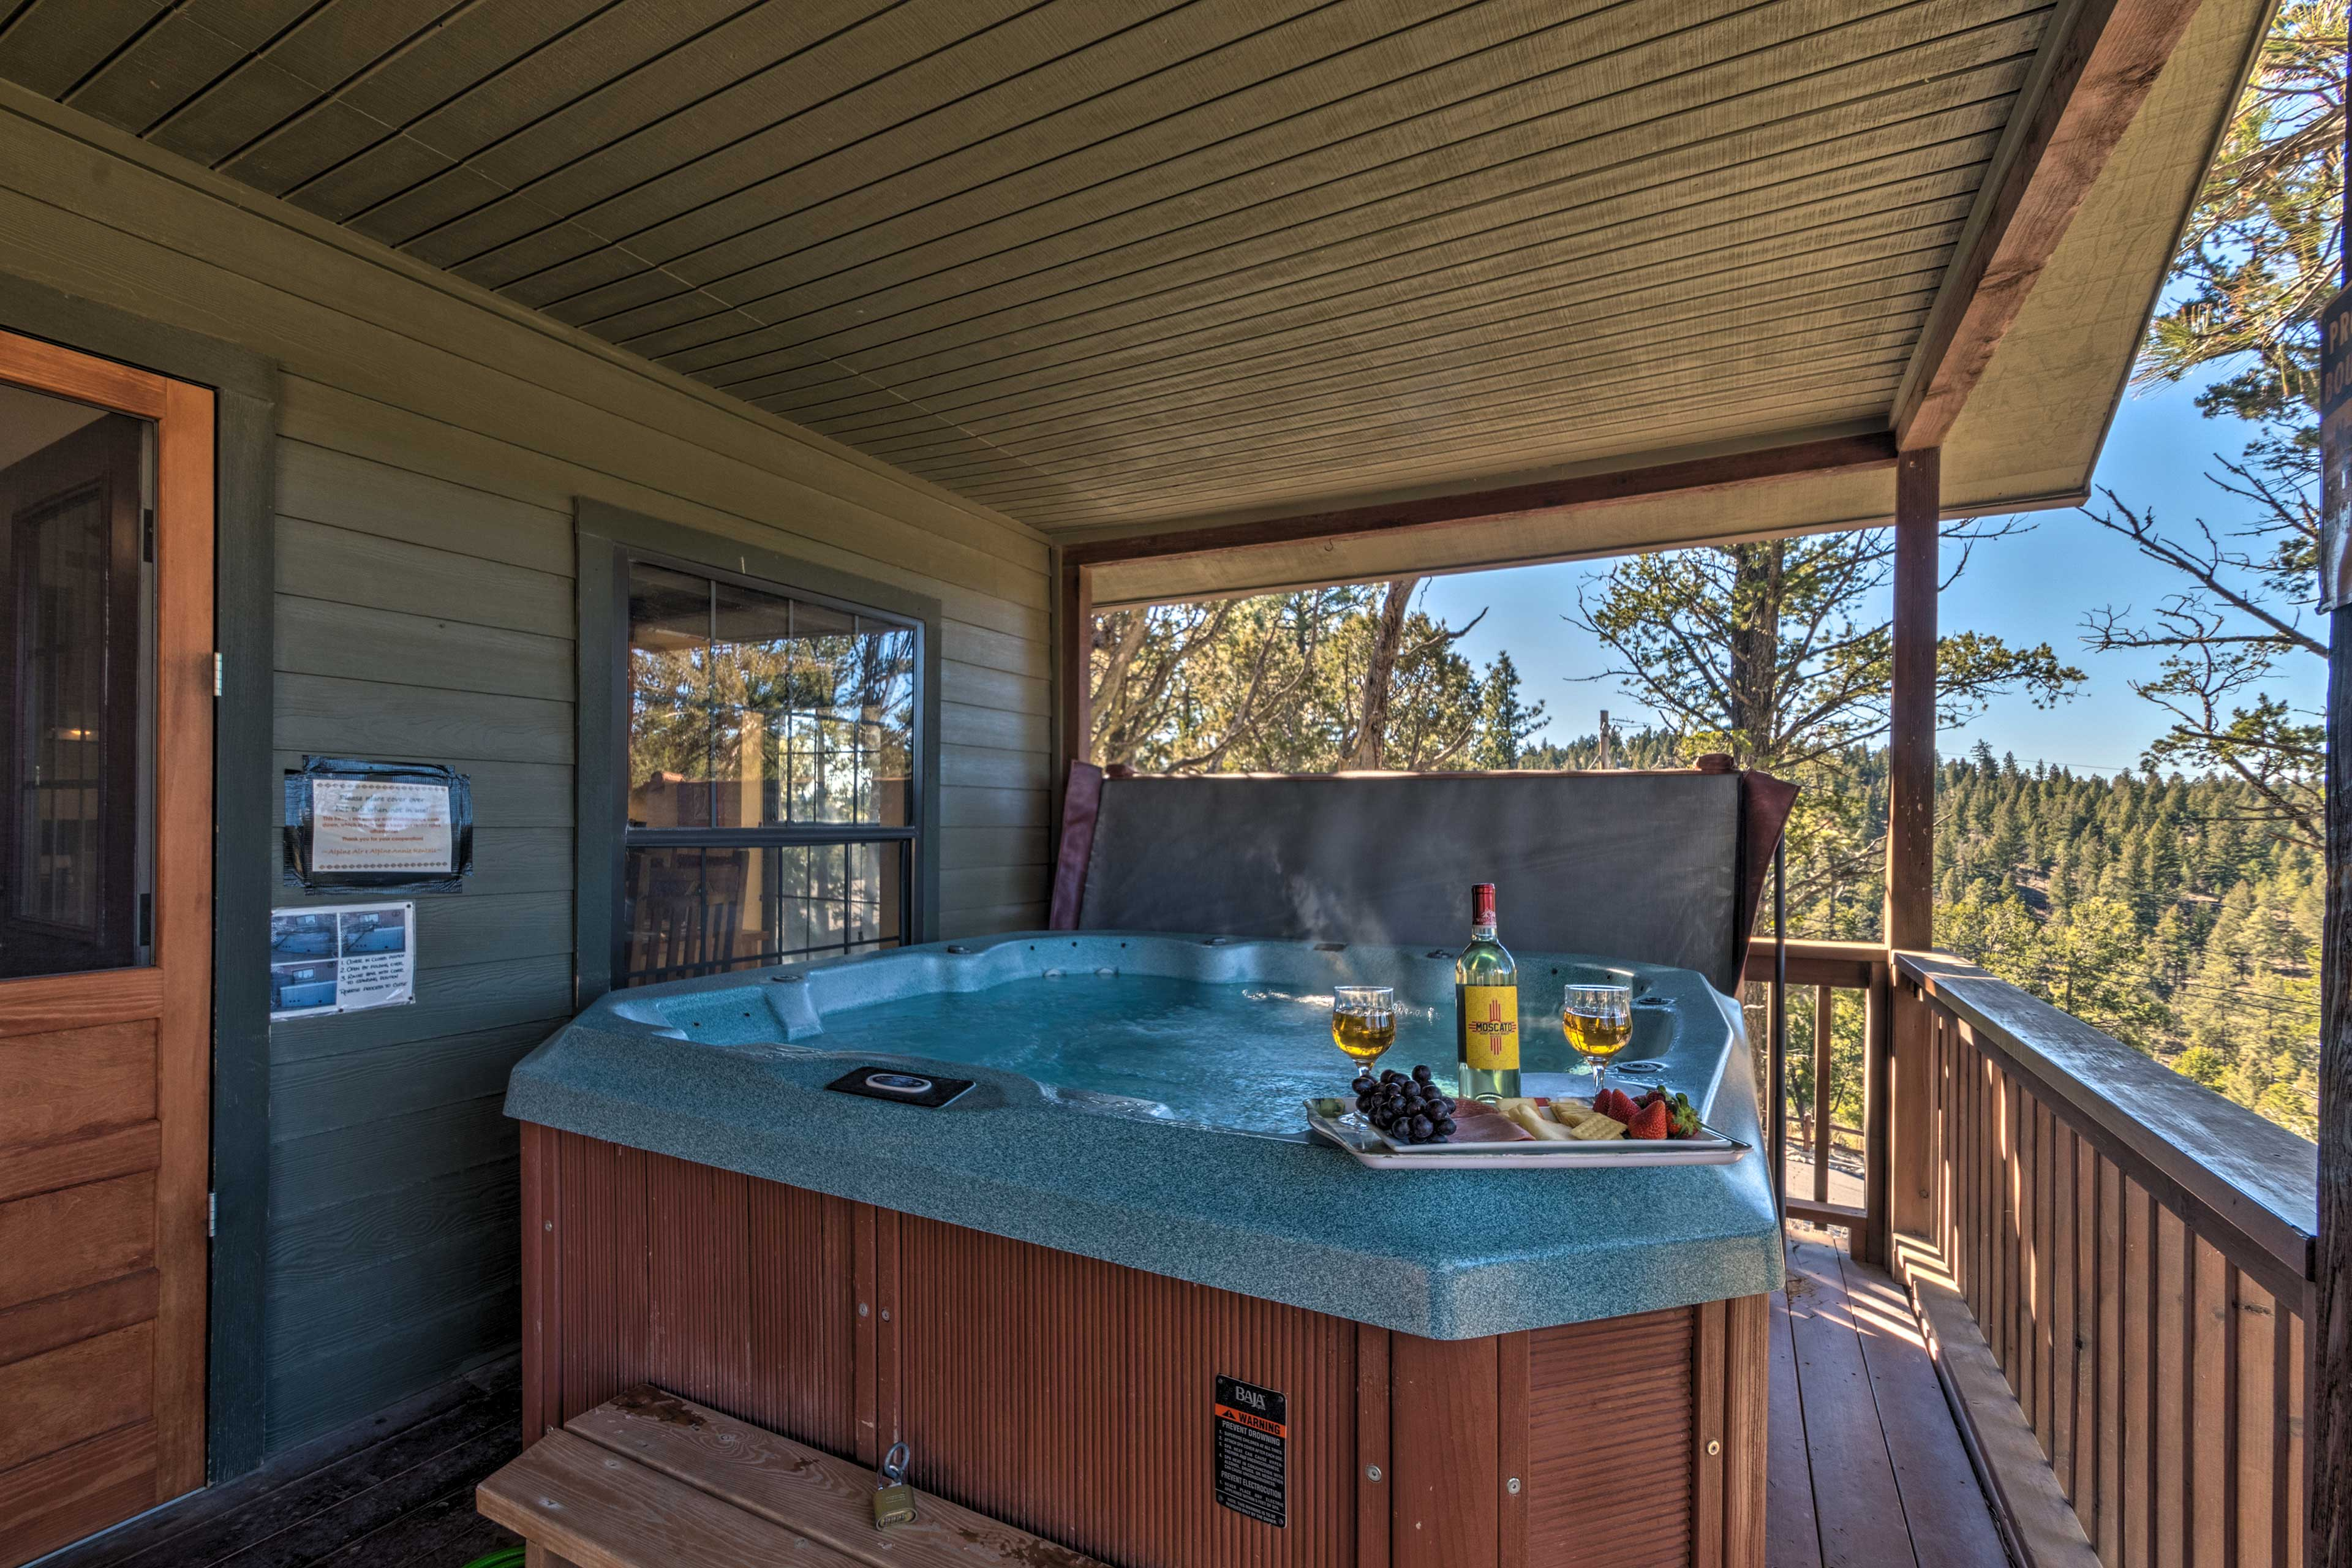 Linger out onto the deck for a soak in the private hot tub.